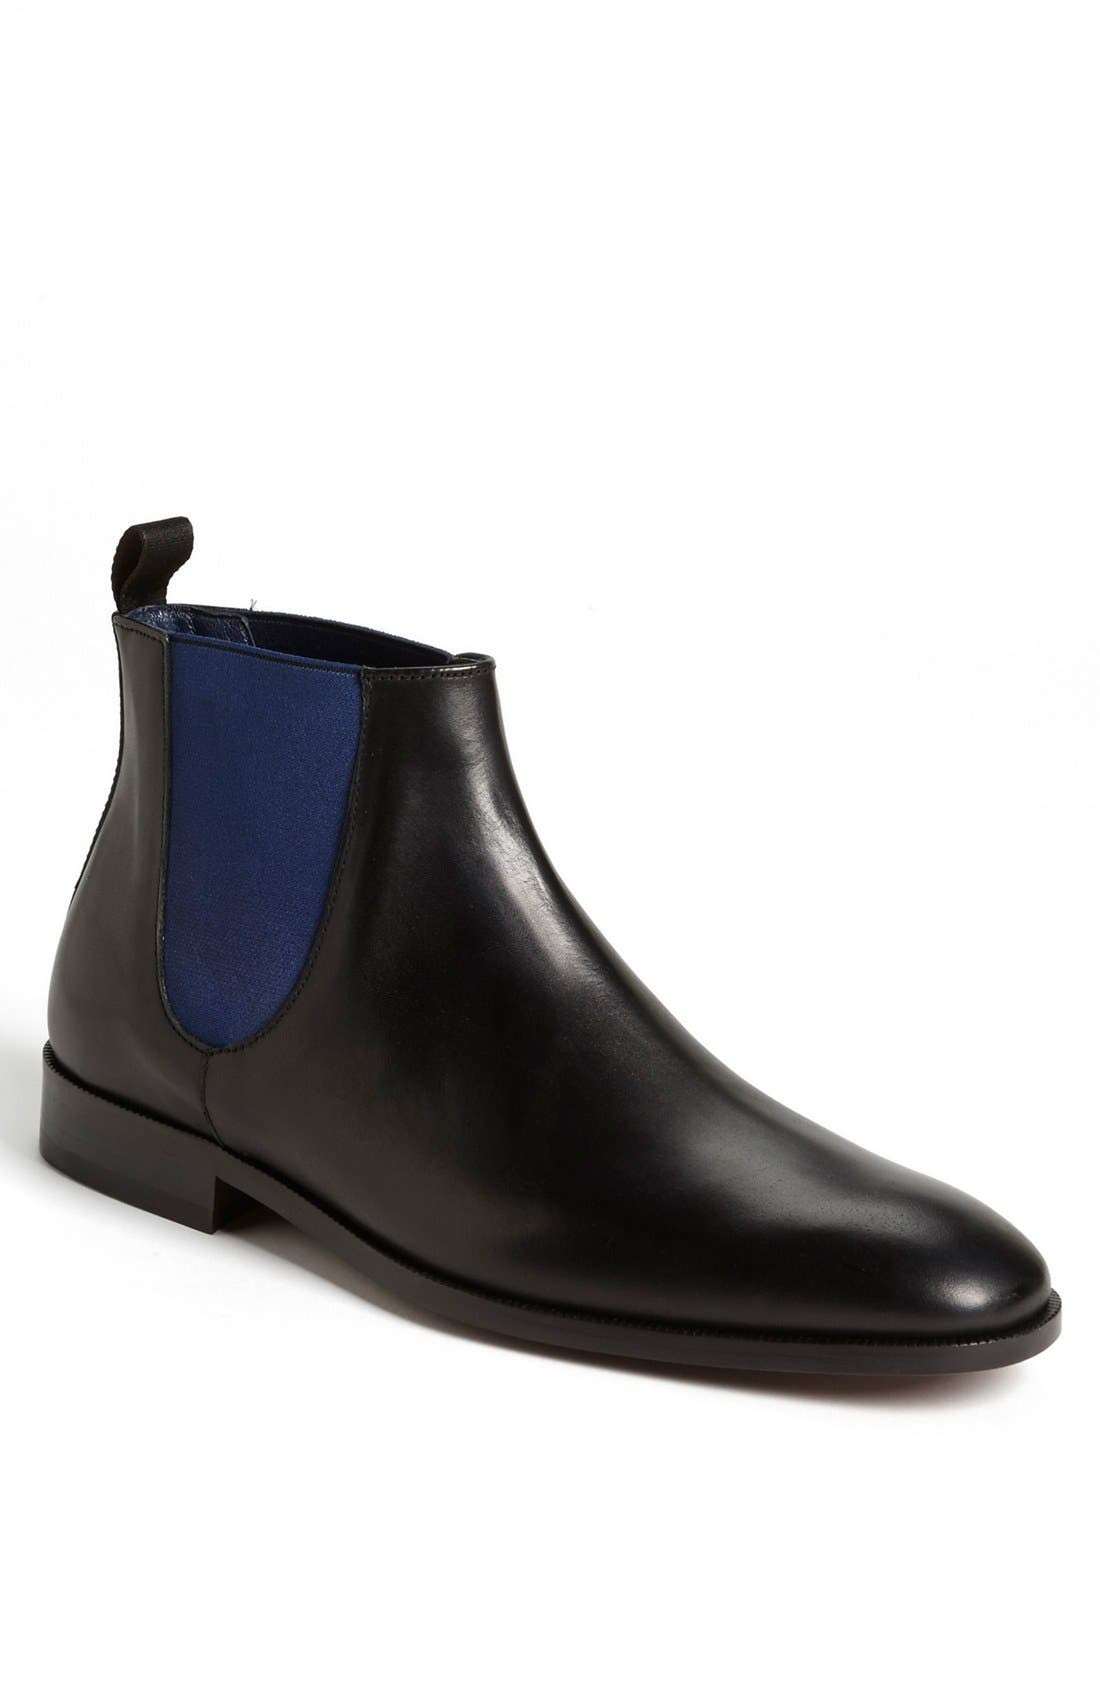 Alternate Image 1 Selected - To Boot New York 'Brent' Chelsea Boot